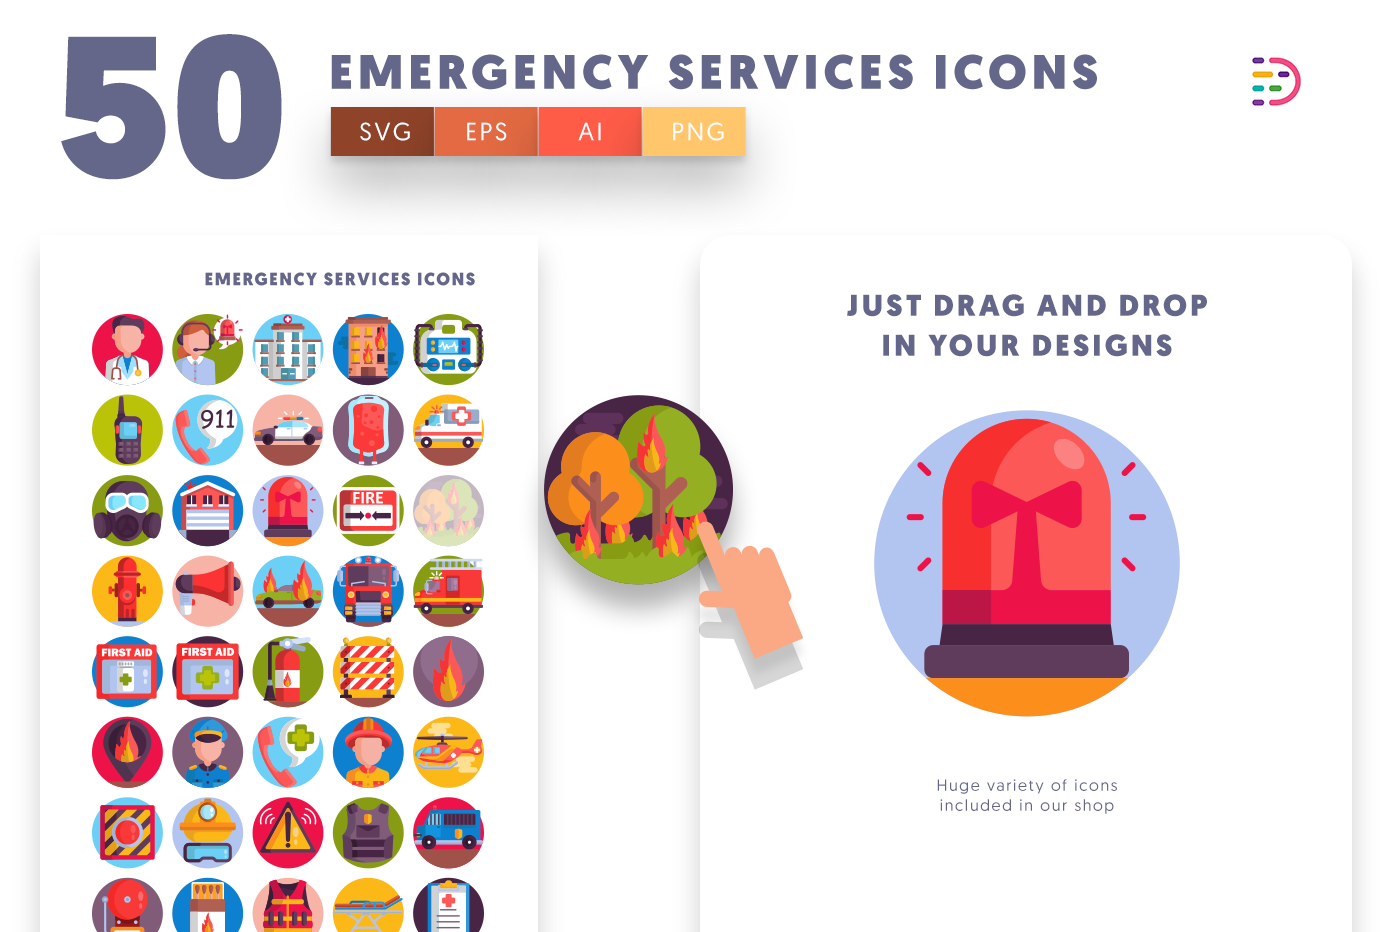 Drag and drop vector 50 Emergency Services Icons